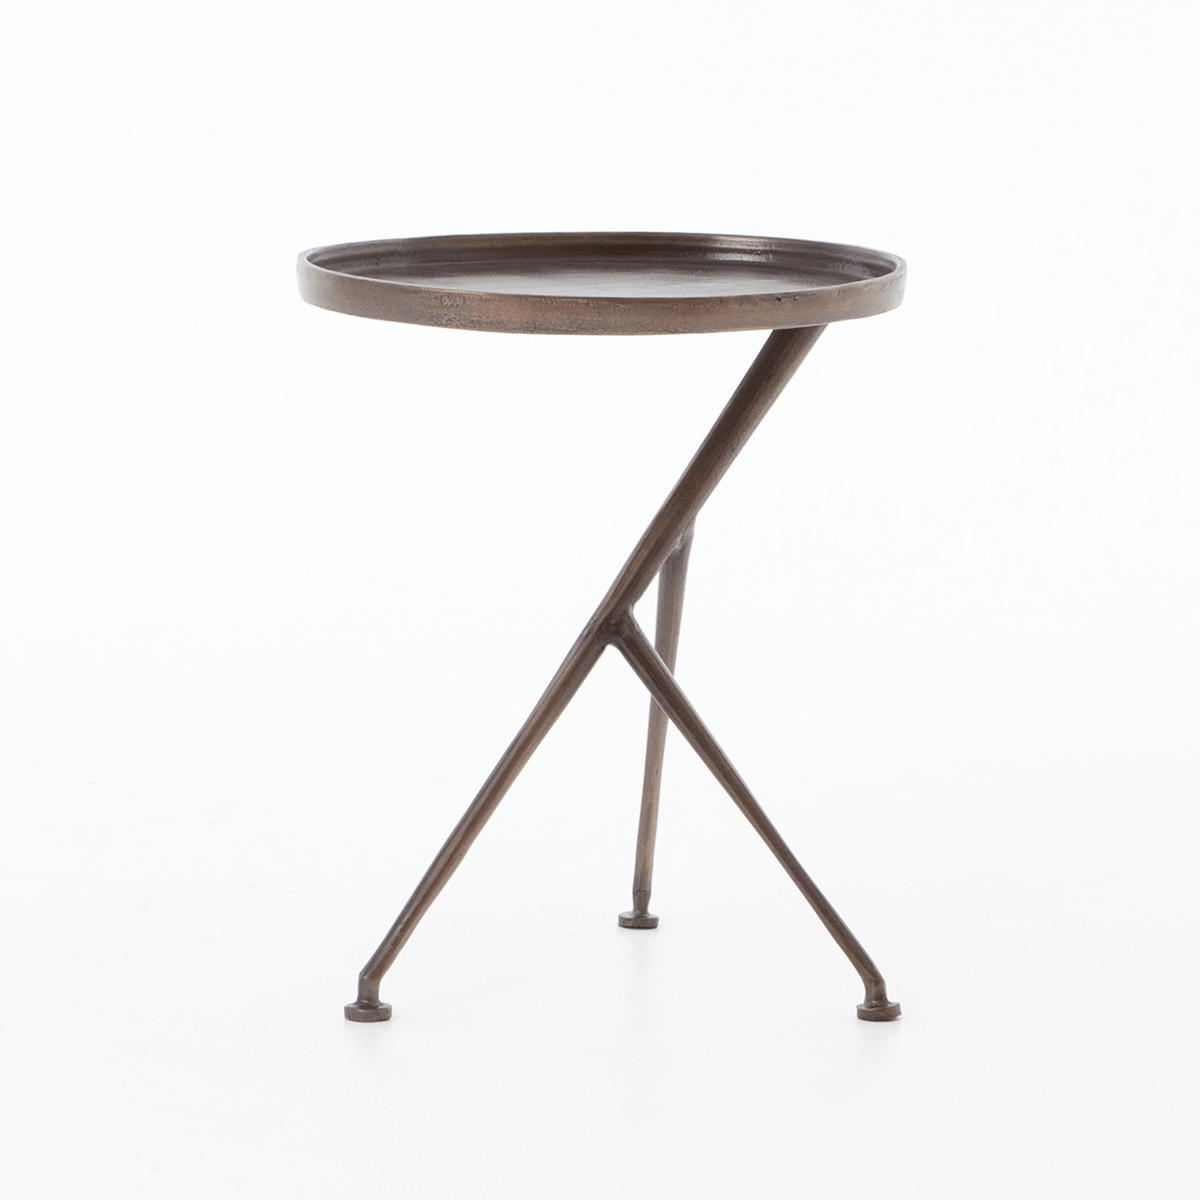 schmidt-accent-table-1-shopceladon